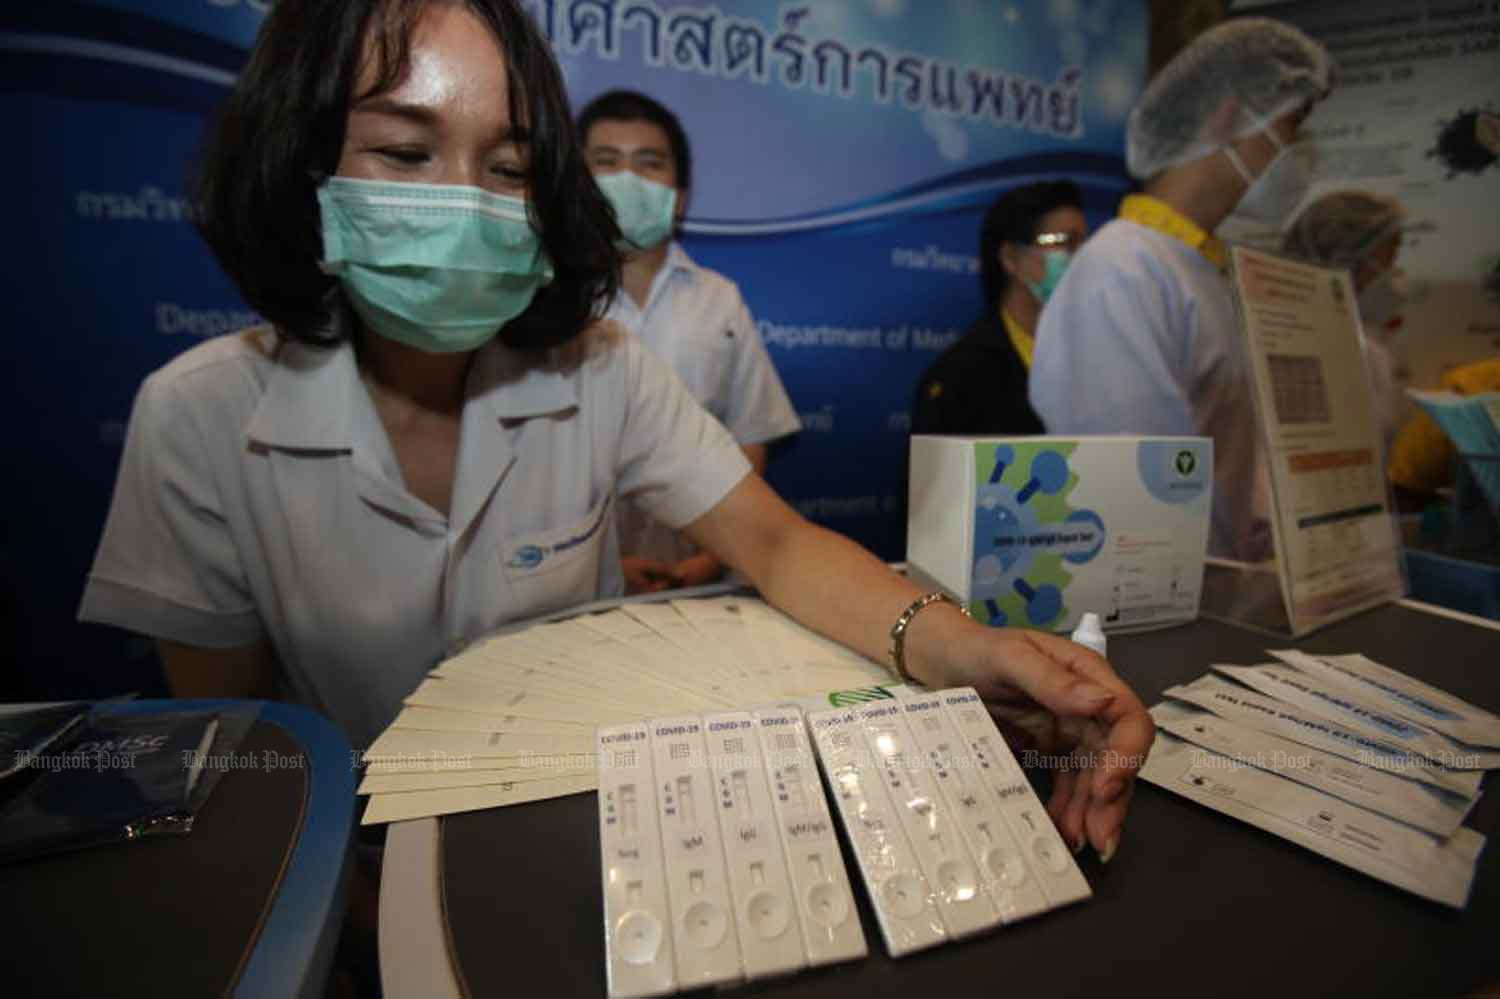 A public health official shows Covid-19 test kits developed by the Public Health Ministry. They are among items on display at the exhibition 'Smart Living with Covid-19' hosted by the ministry at Pullman King Power Hotel, Bangkok and at the heart of plans to gradually reopen the country. (Photo by Nutthawat Wicheanbut)